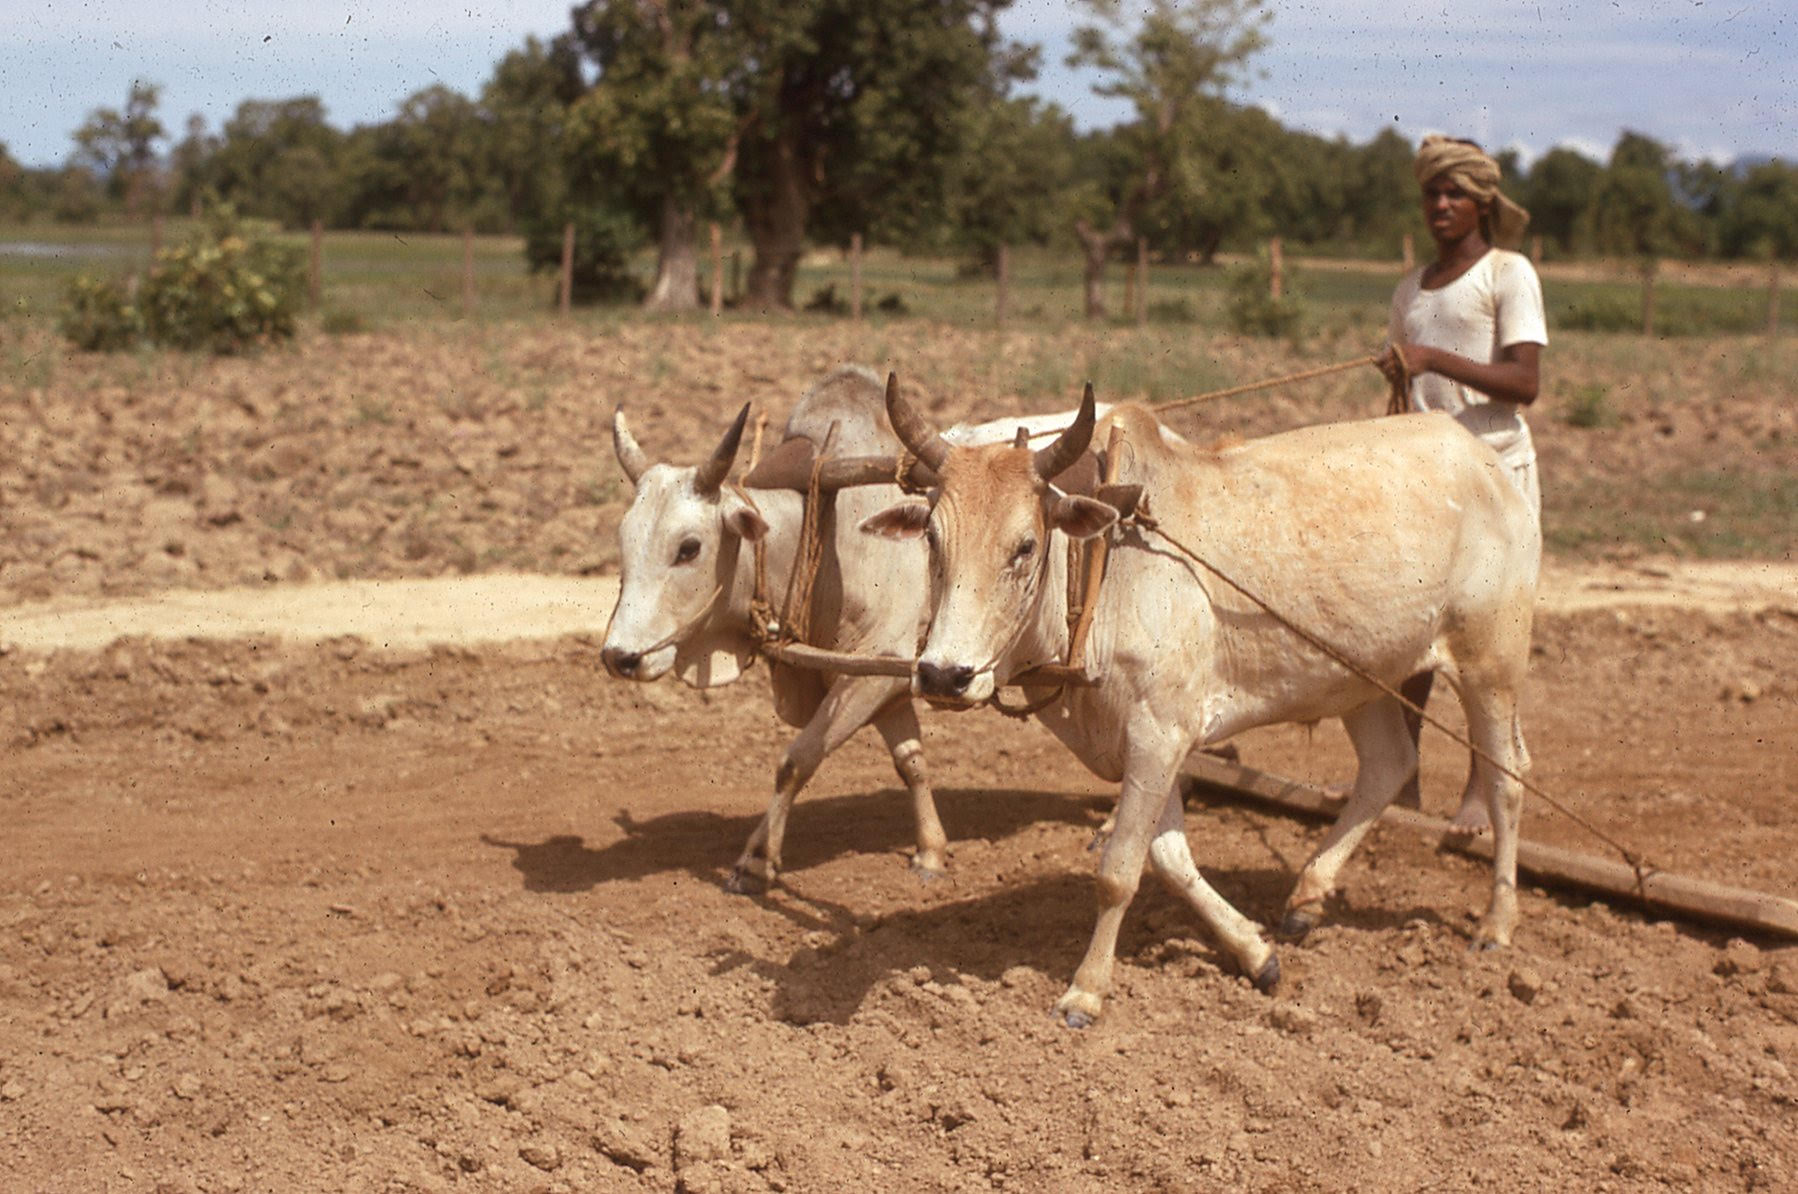 Landscape in Nepal of a muddy field. Two oxen plow the field led by a man from the village.